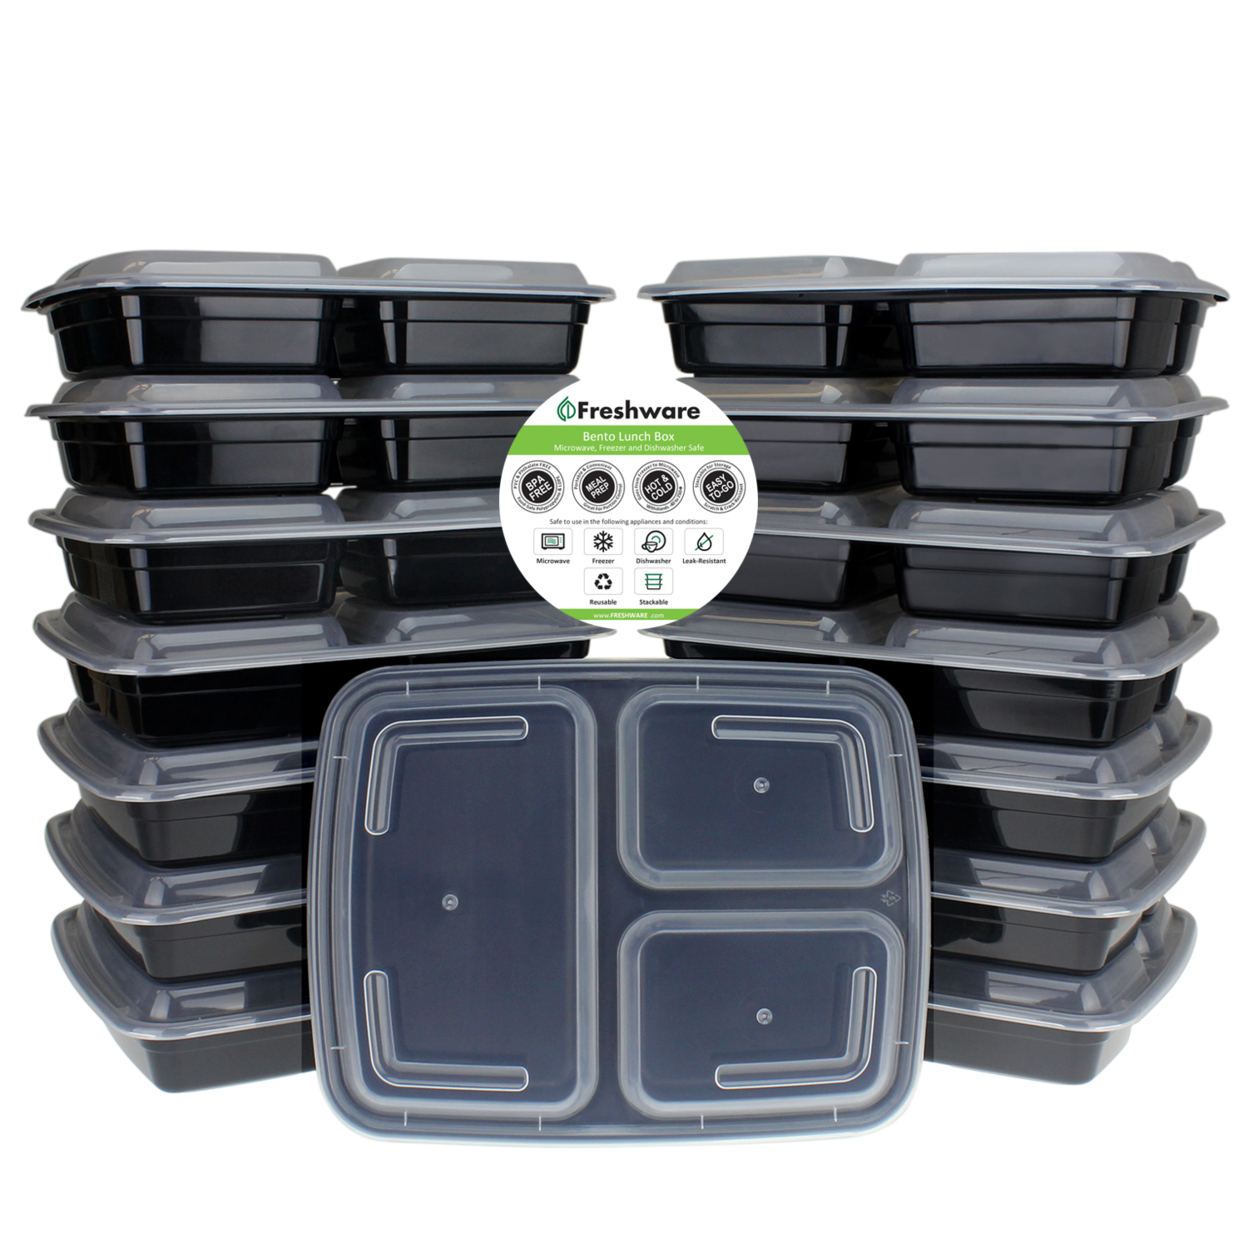 Freshware 15-pack 3 Compartment Bento Lunch Boxes With Lids Meal Prep, Portion Control, 21 Day Fix & Food Storage Containers (32oz)